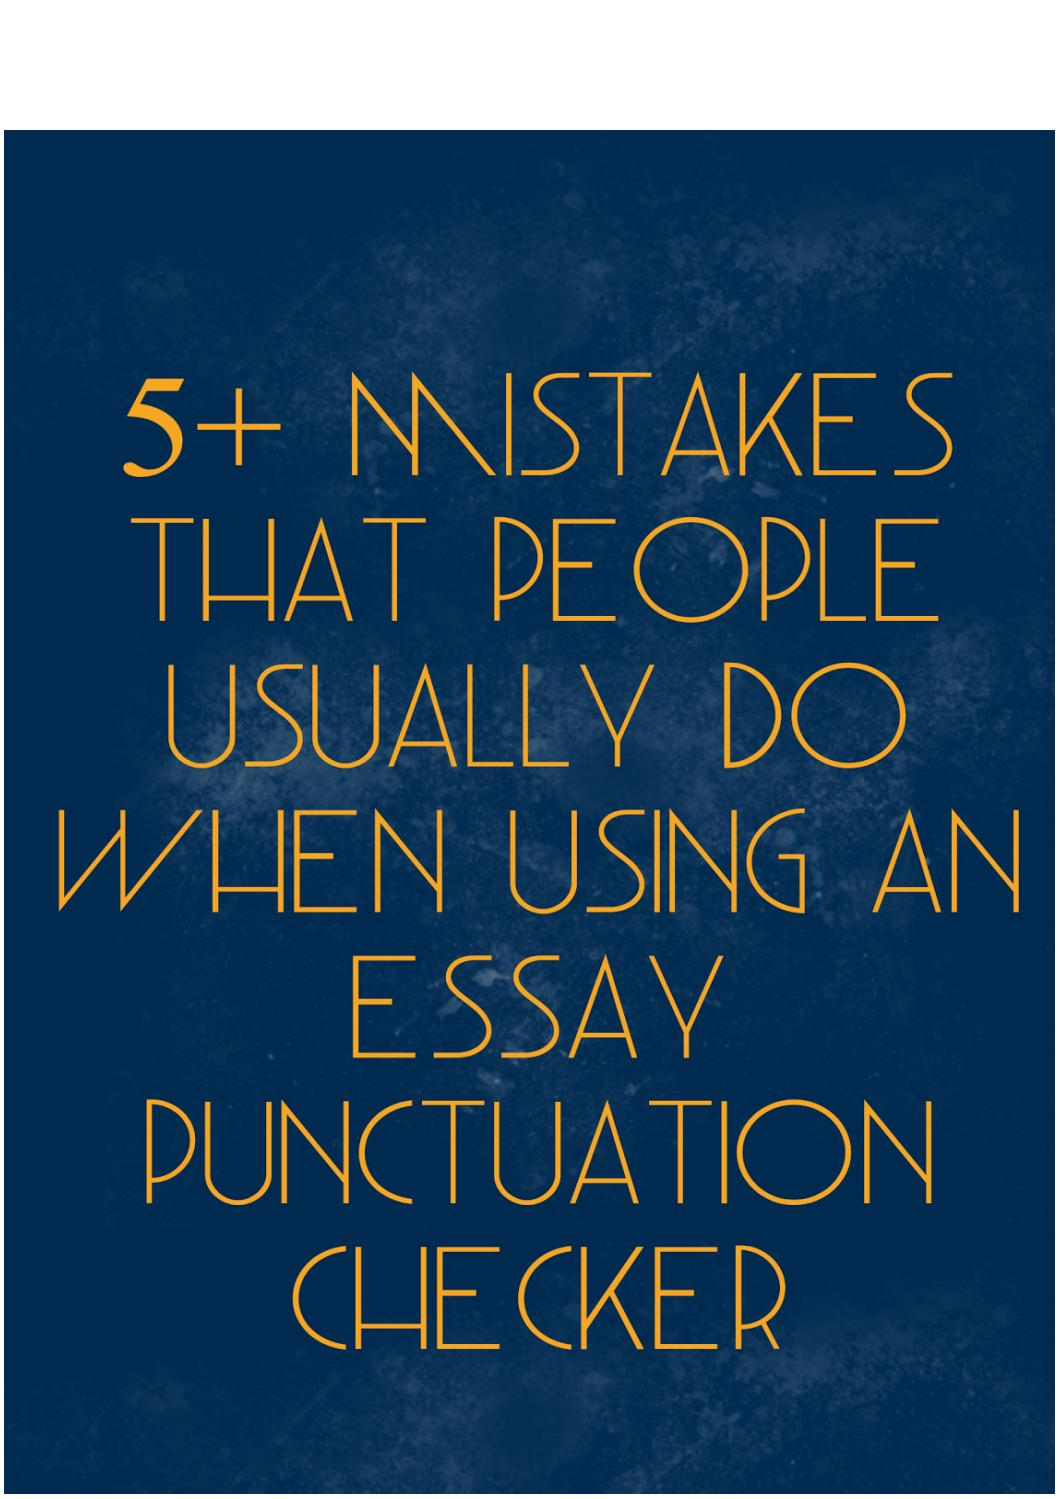 mistakes that people usually do when using an essay punctuation  5 mistakes that people usually do when using an essay punctuation checker by punctuation corrector issuu